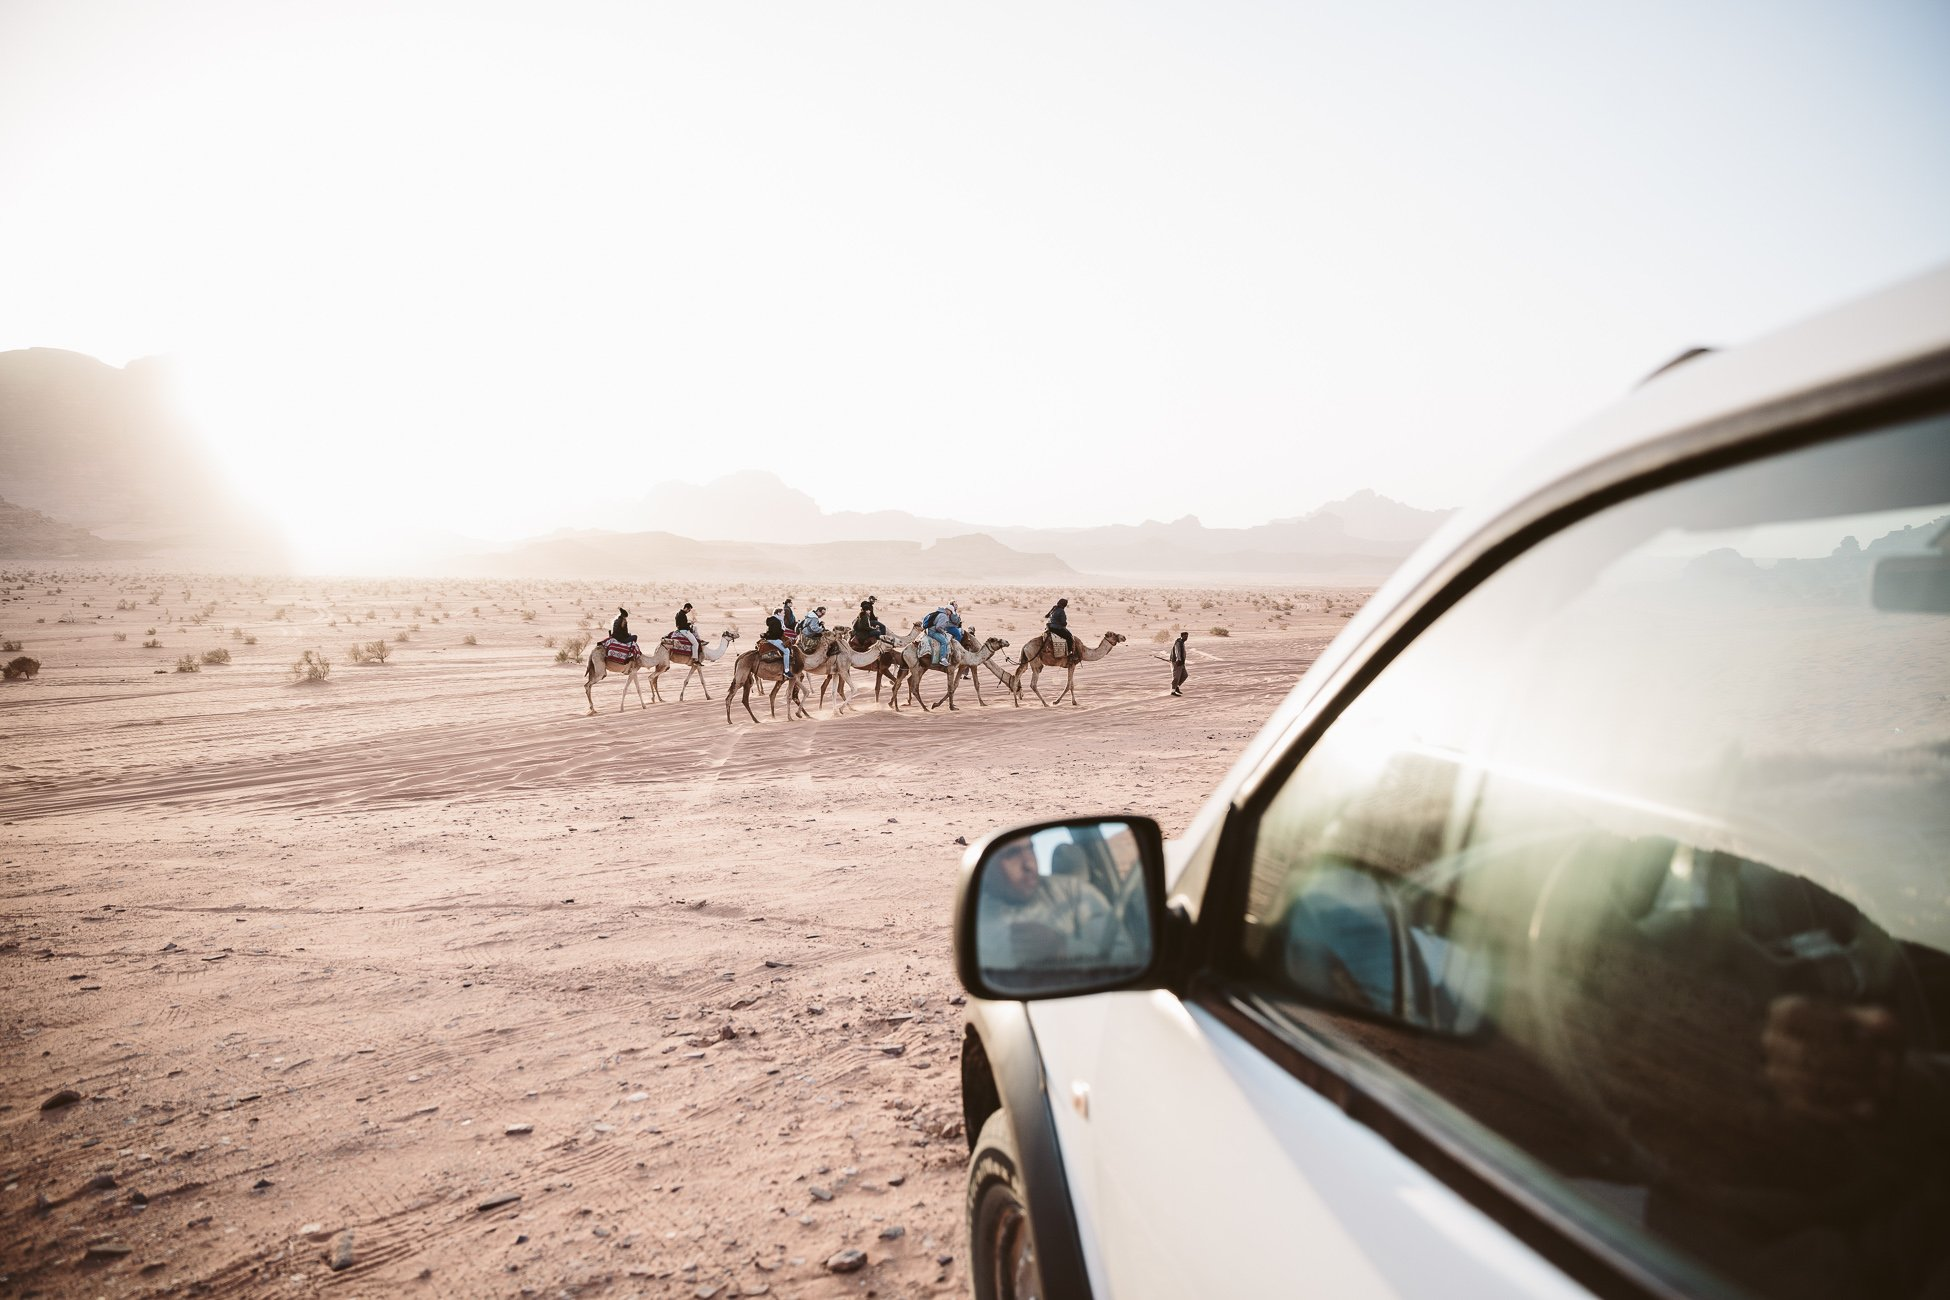 Jeep Safari and Camel Ride in Wadi Rum Jordan